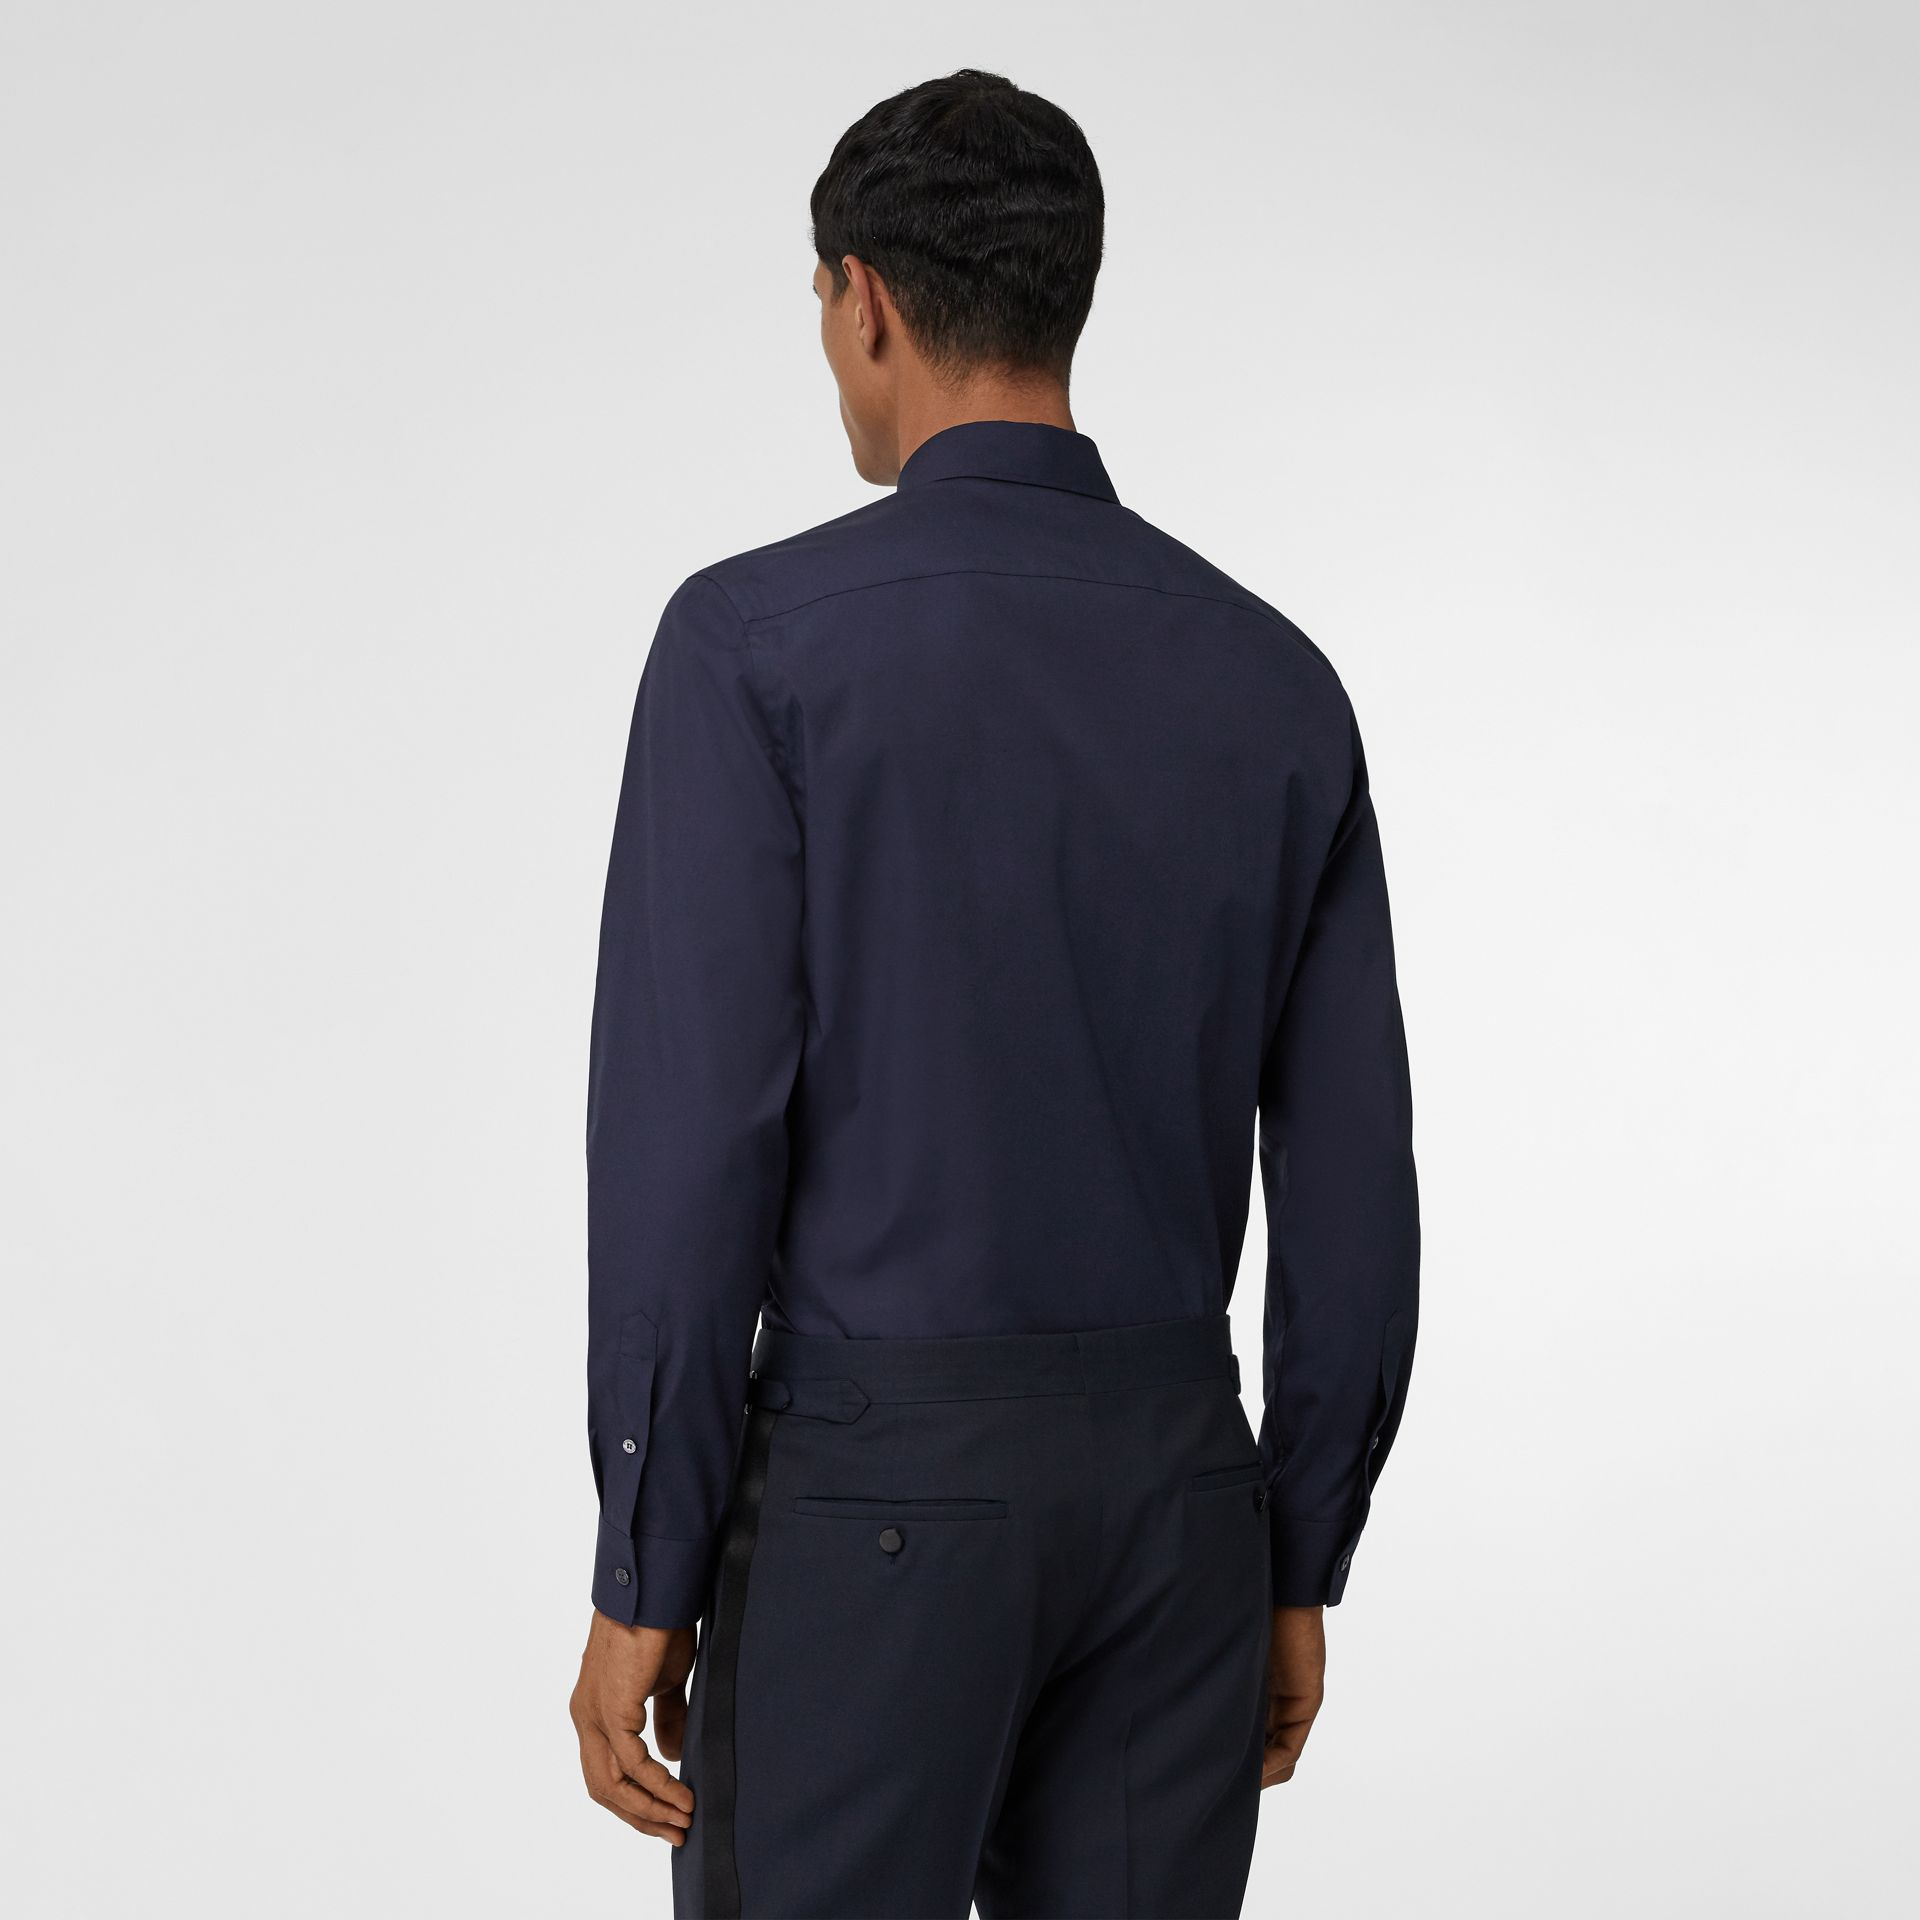 Monogram Motif Stretch Cotton Poplin Shirt in Navy - Men | Burberry - gallery image 2